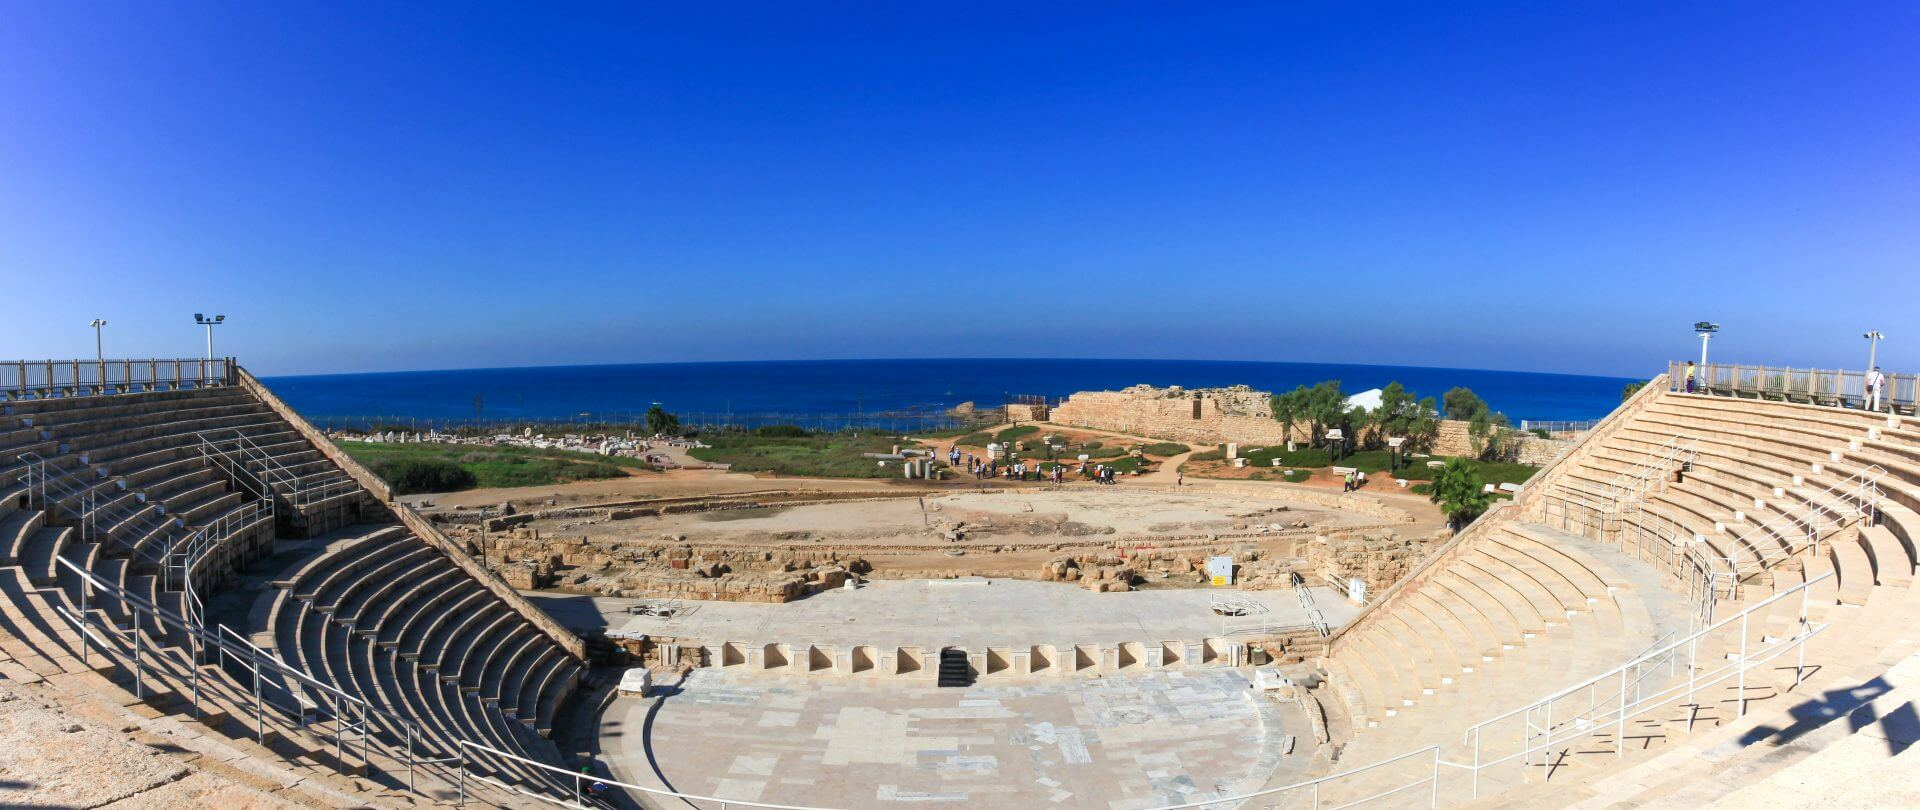 Roman amphitheater built in the times of King Herodes.